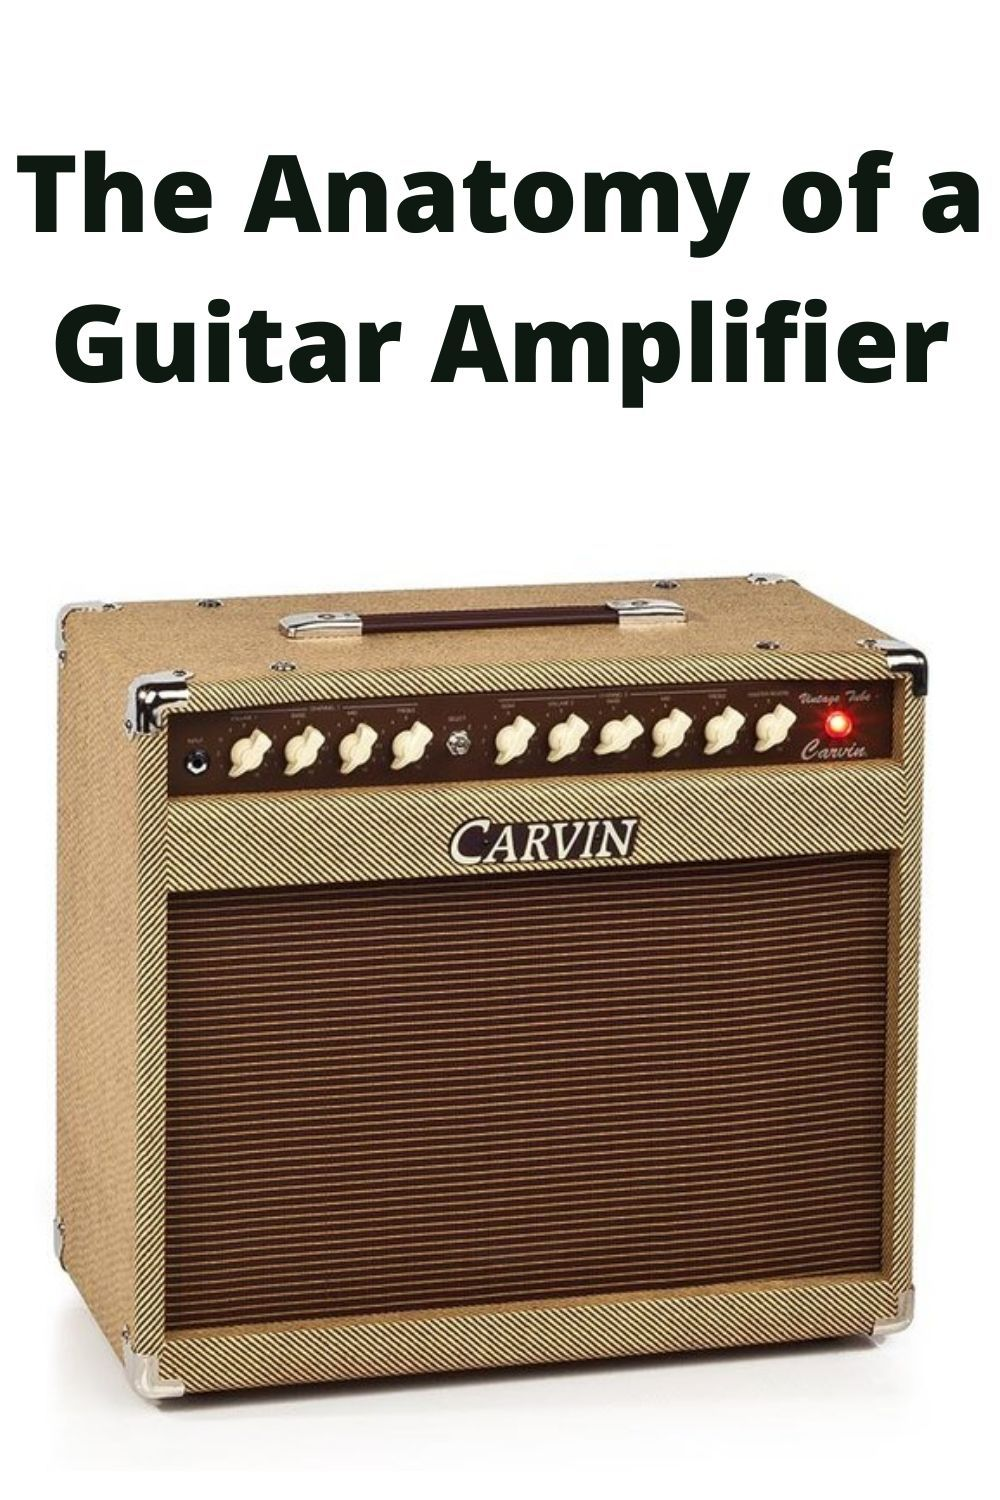 The Anatomy Of A Guitar Amplifier In 2020 Guitar Amp Acoustic Guitar Amp Acoustic Guitar